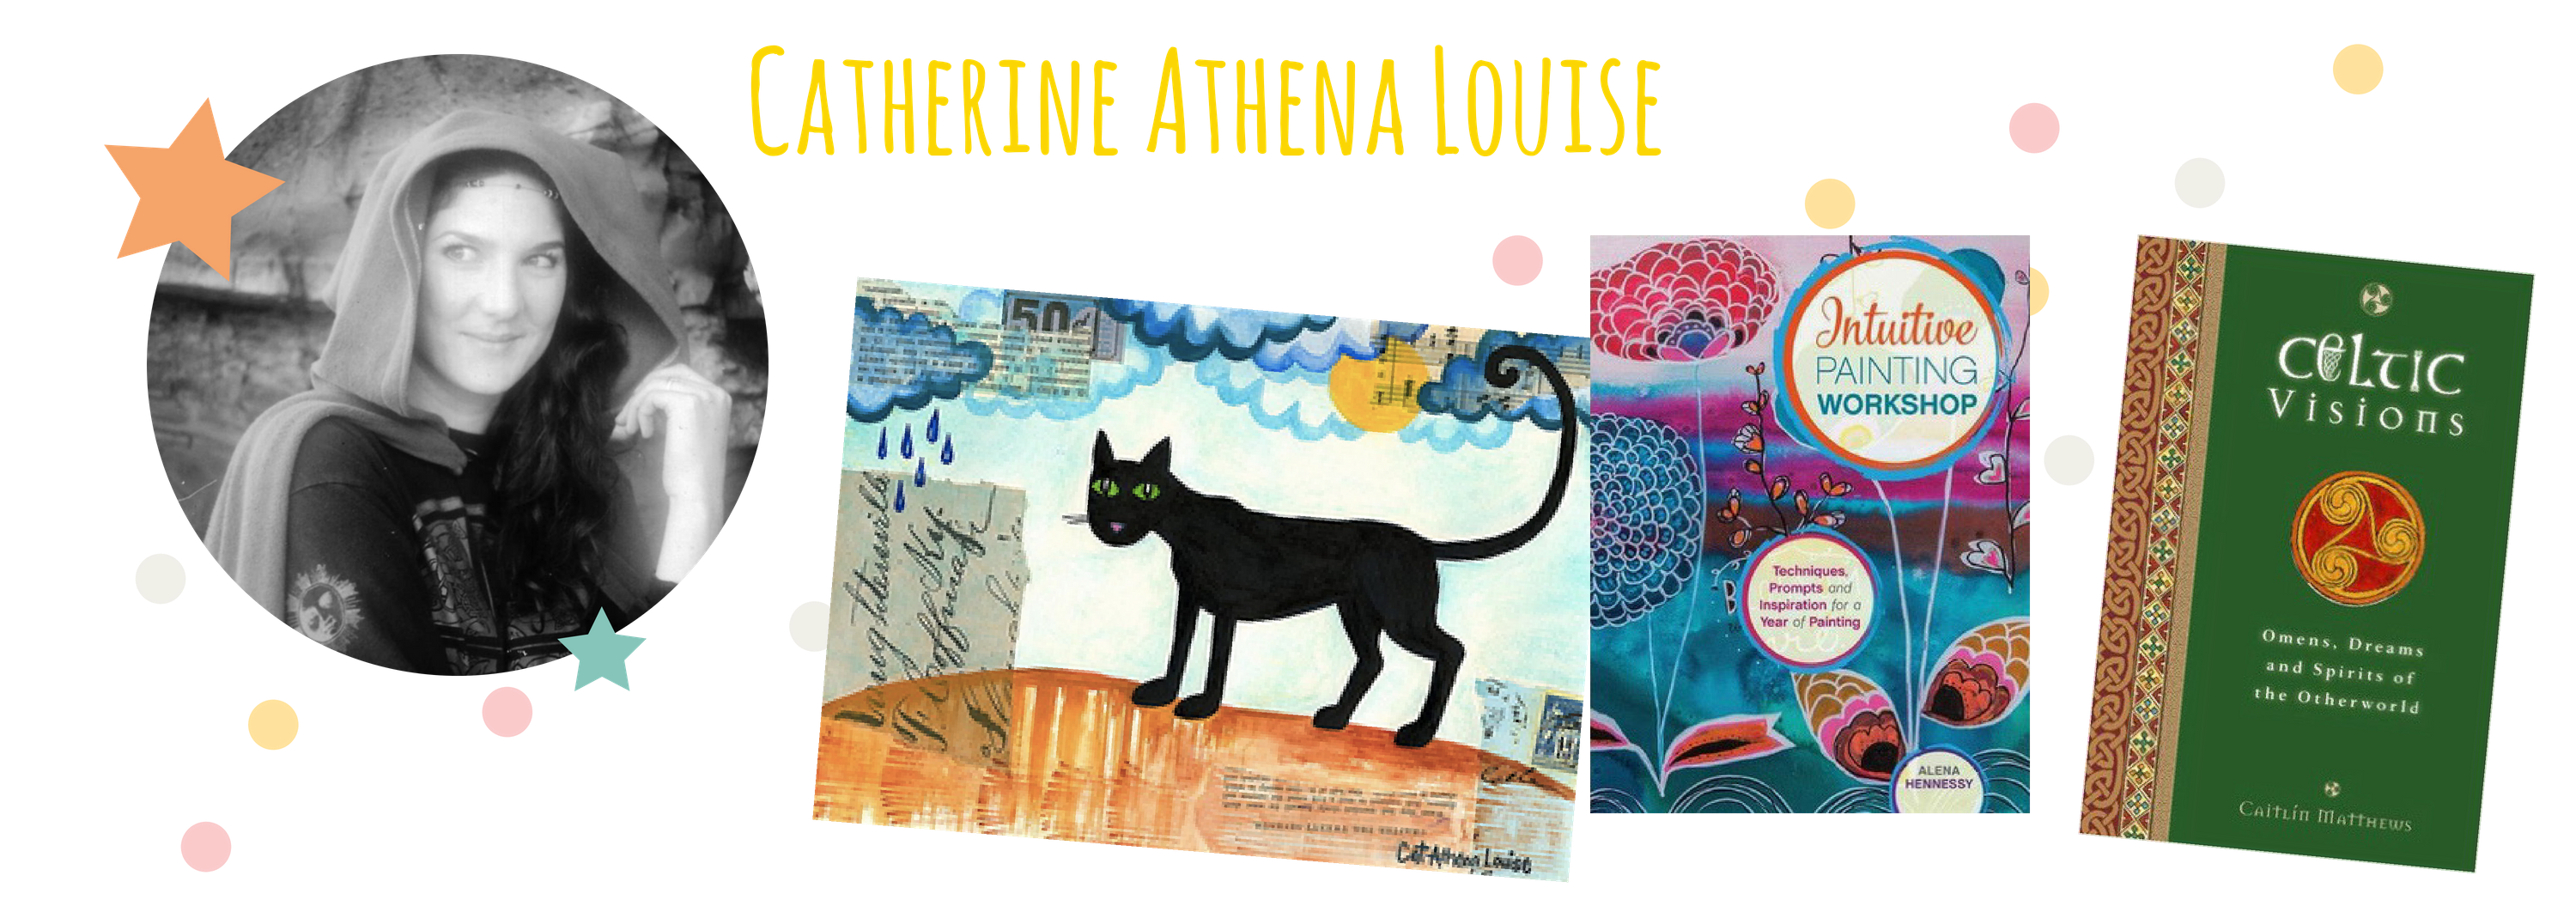 Catherine Athena Louise for Children's Book Academy